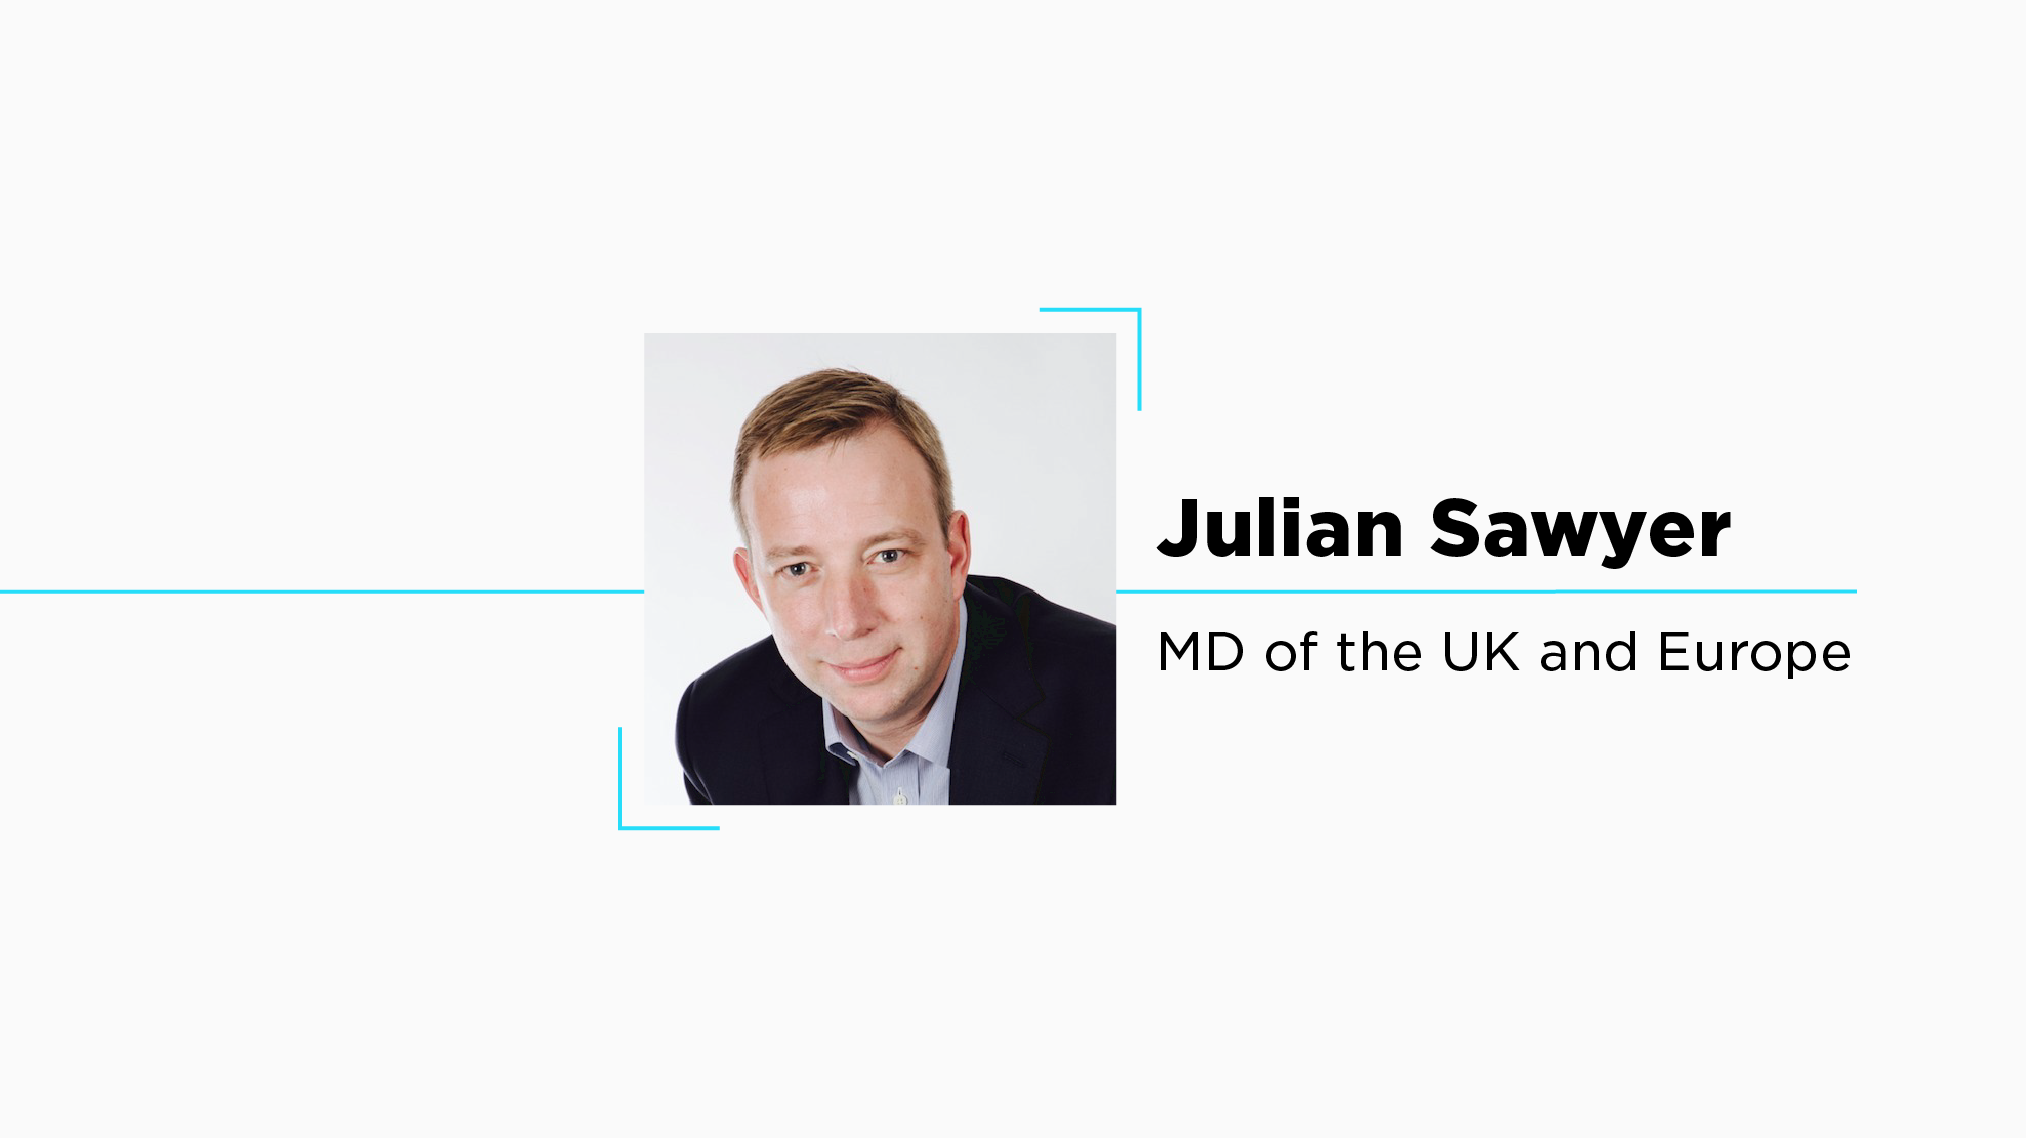 Gemini Welcomes Julian Sawyer as Managing Director of the UK and Europe